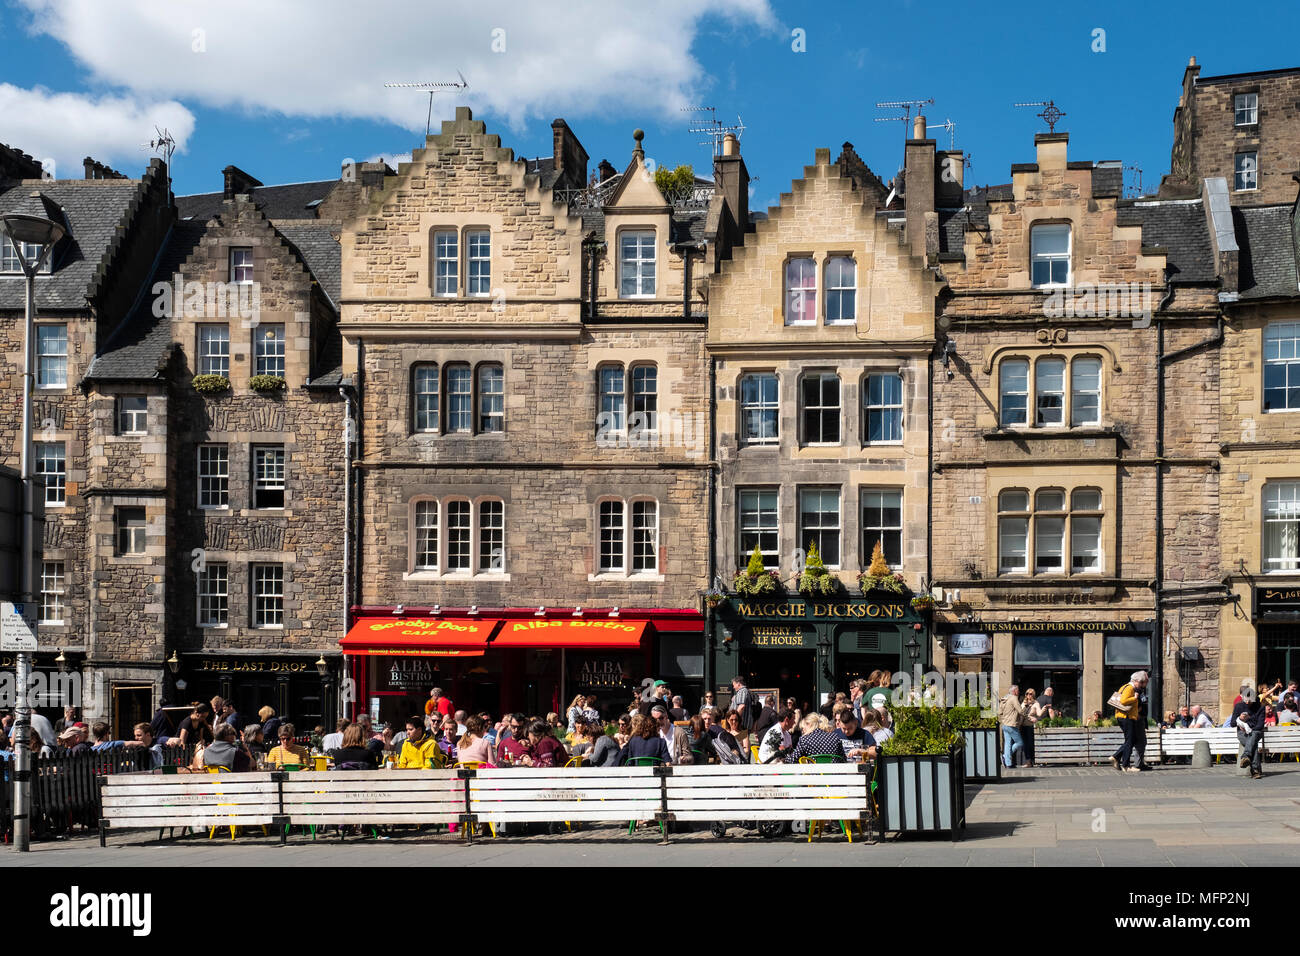 View of outdoor bars at Grassmarket in Edinburgh Old Town on sunny afternoon, Edinburgh, Scotland, UK - Stock Image